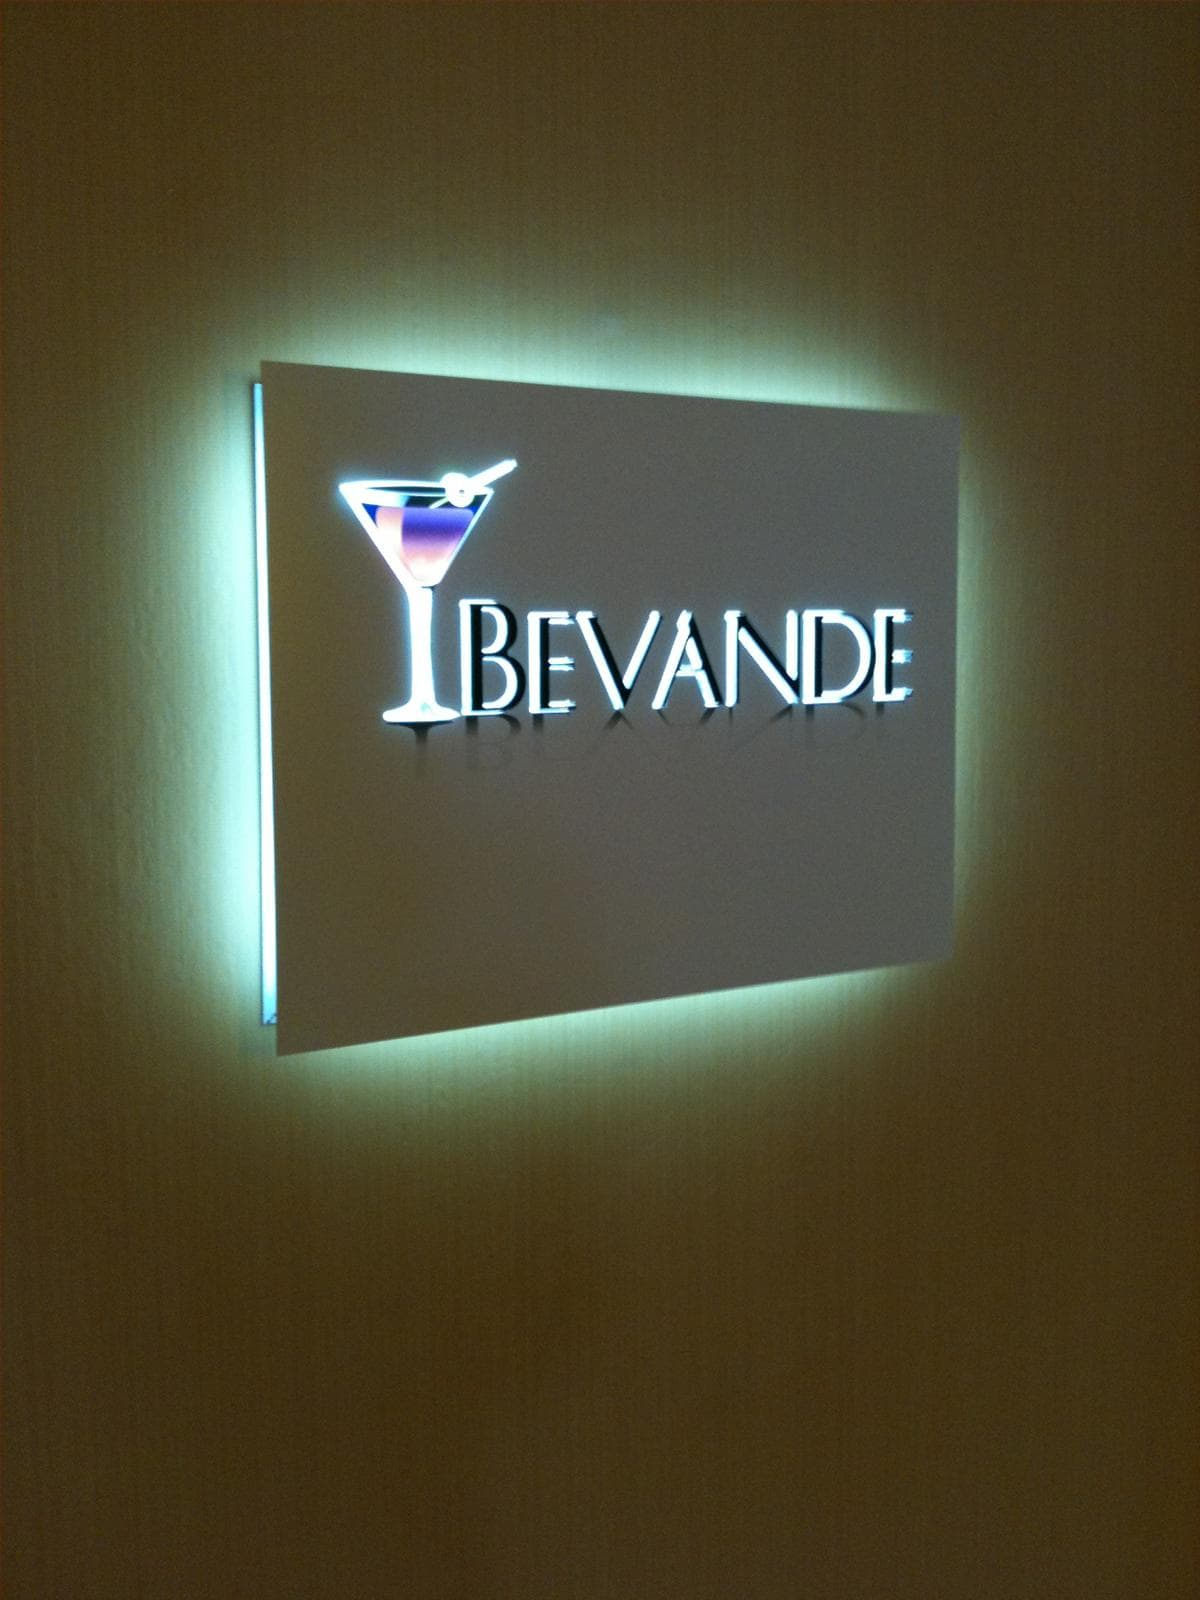 Devande Illuminated Wall Sign